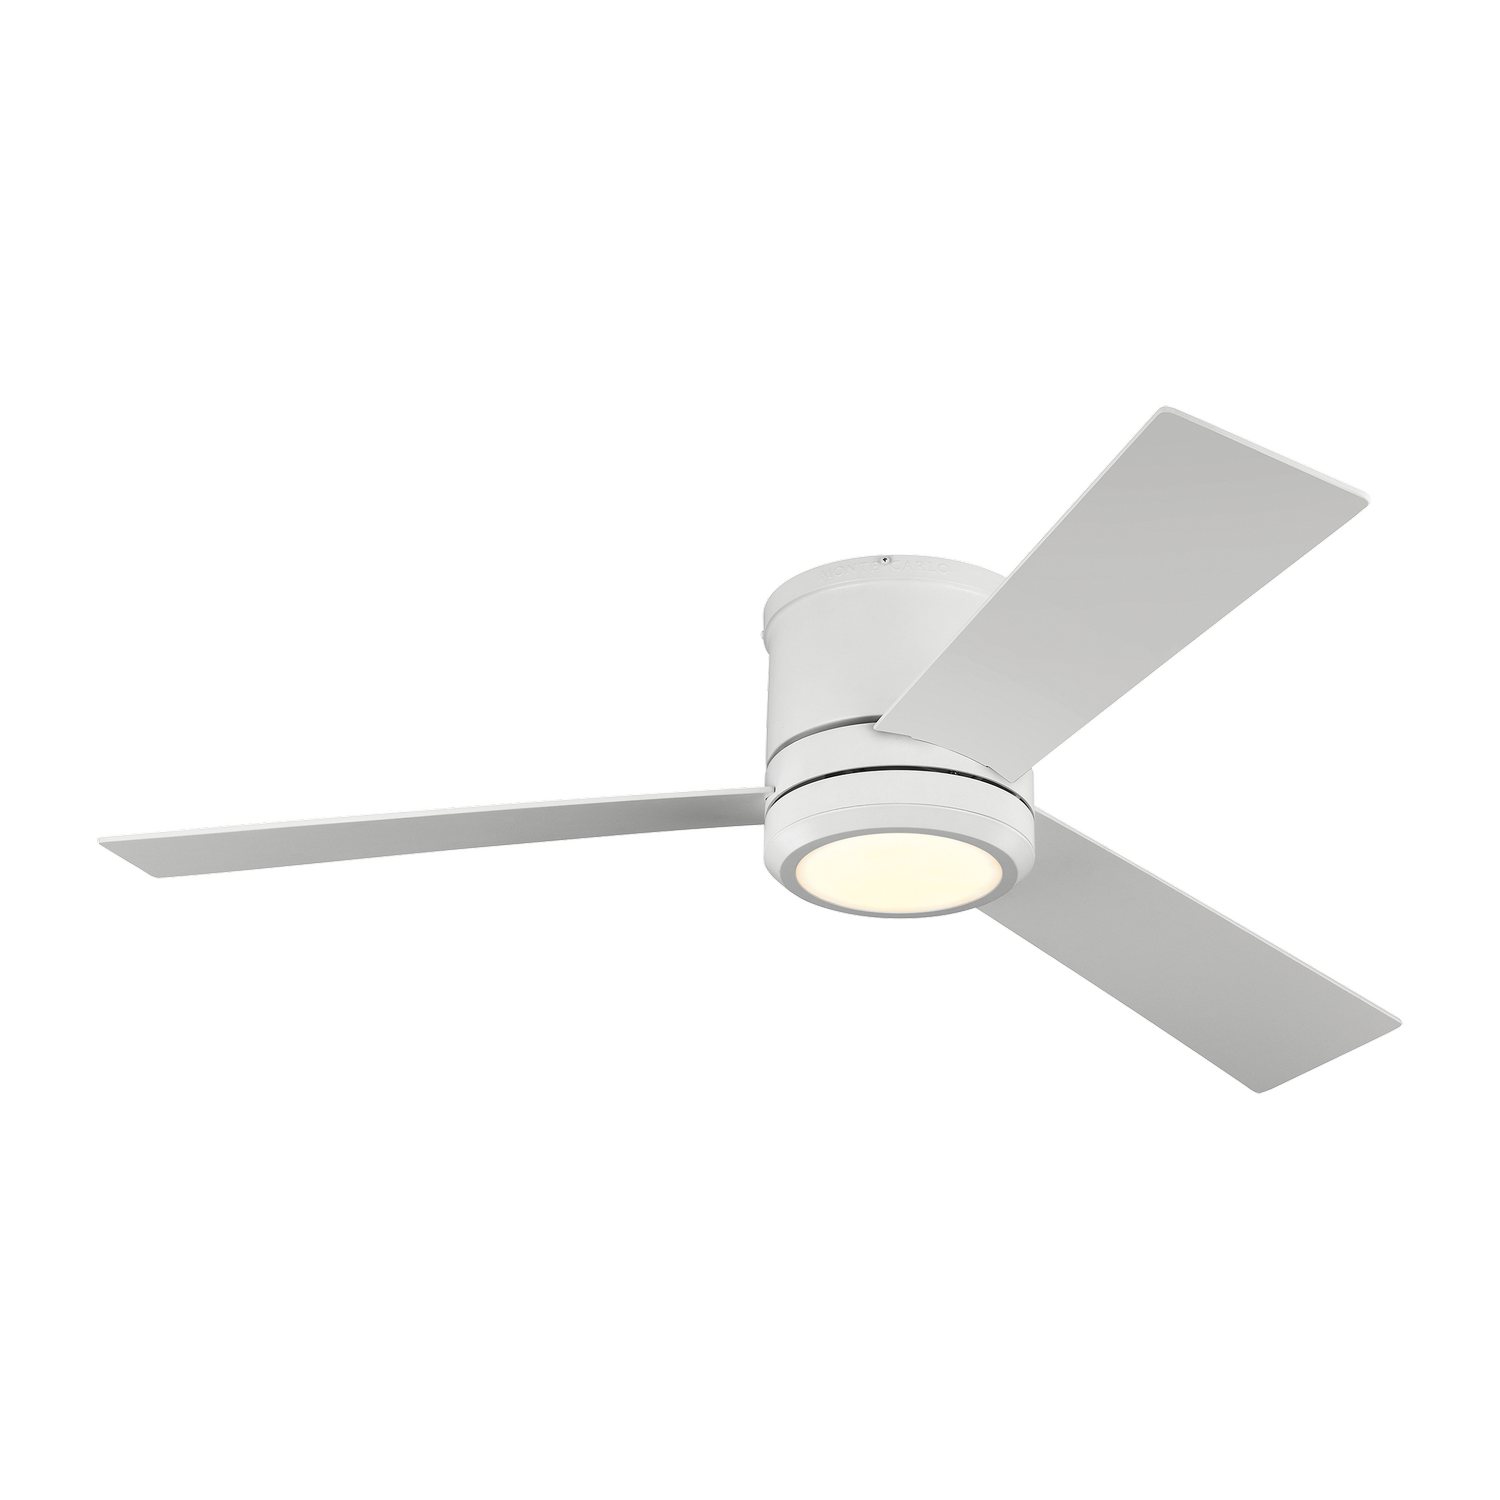 56 inchCeiling Fan from the Clarity Max collection by Monte Carlo 3CLMR56RZWD V1